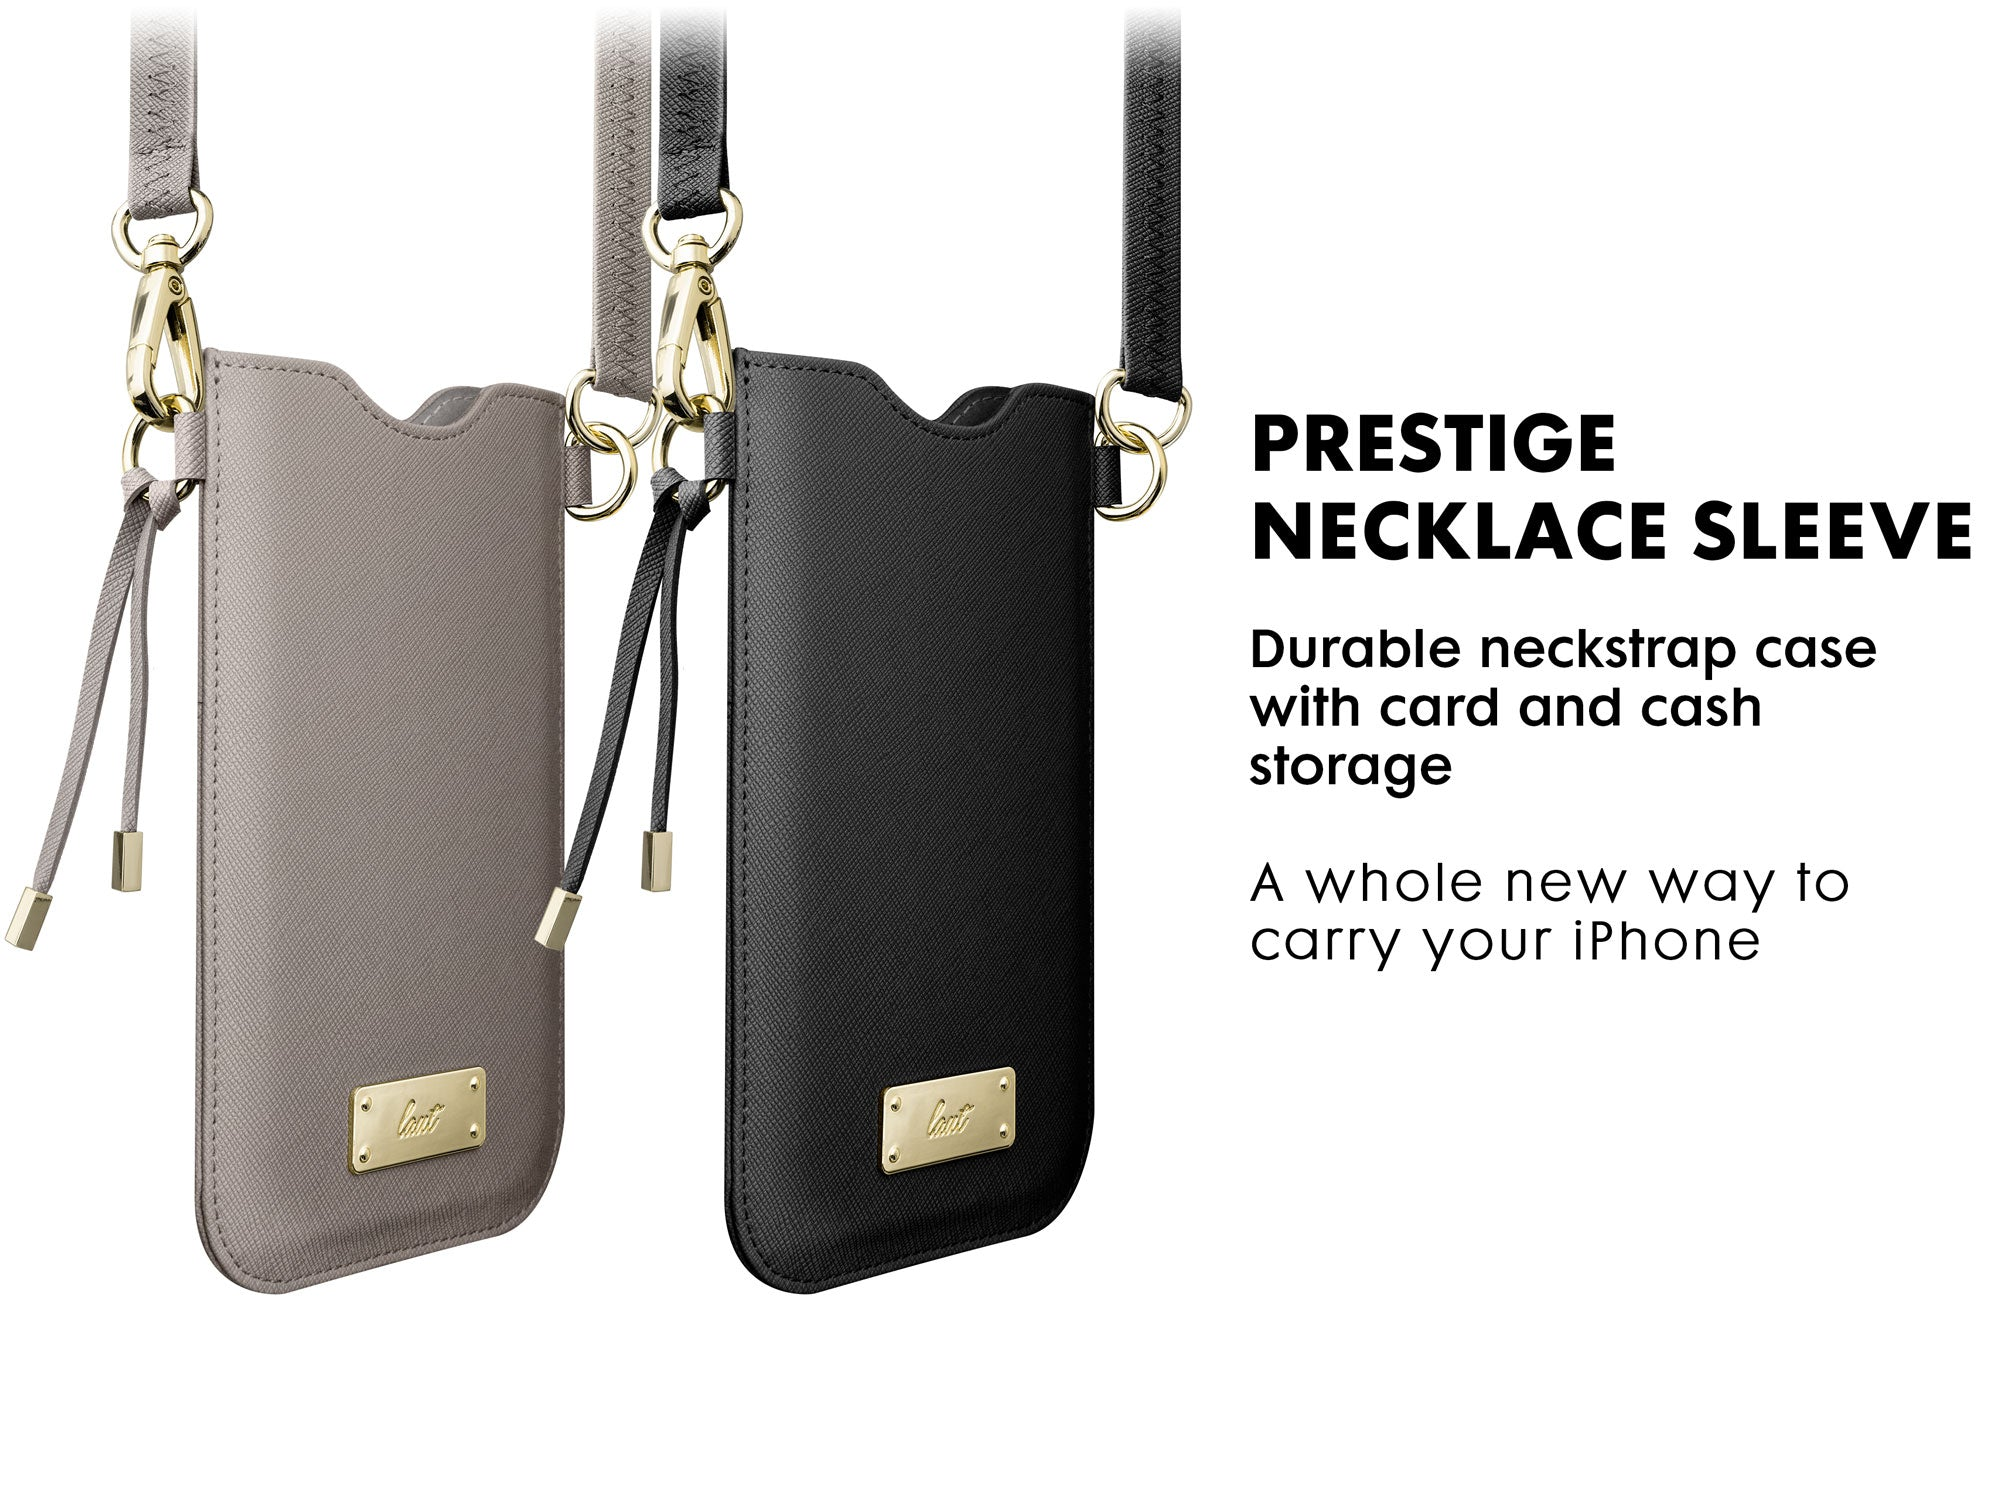 PRESTIGE Necklace Sleeve for iPhone 11 series